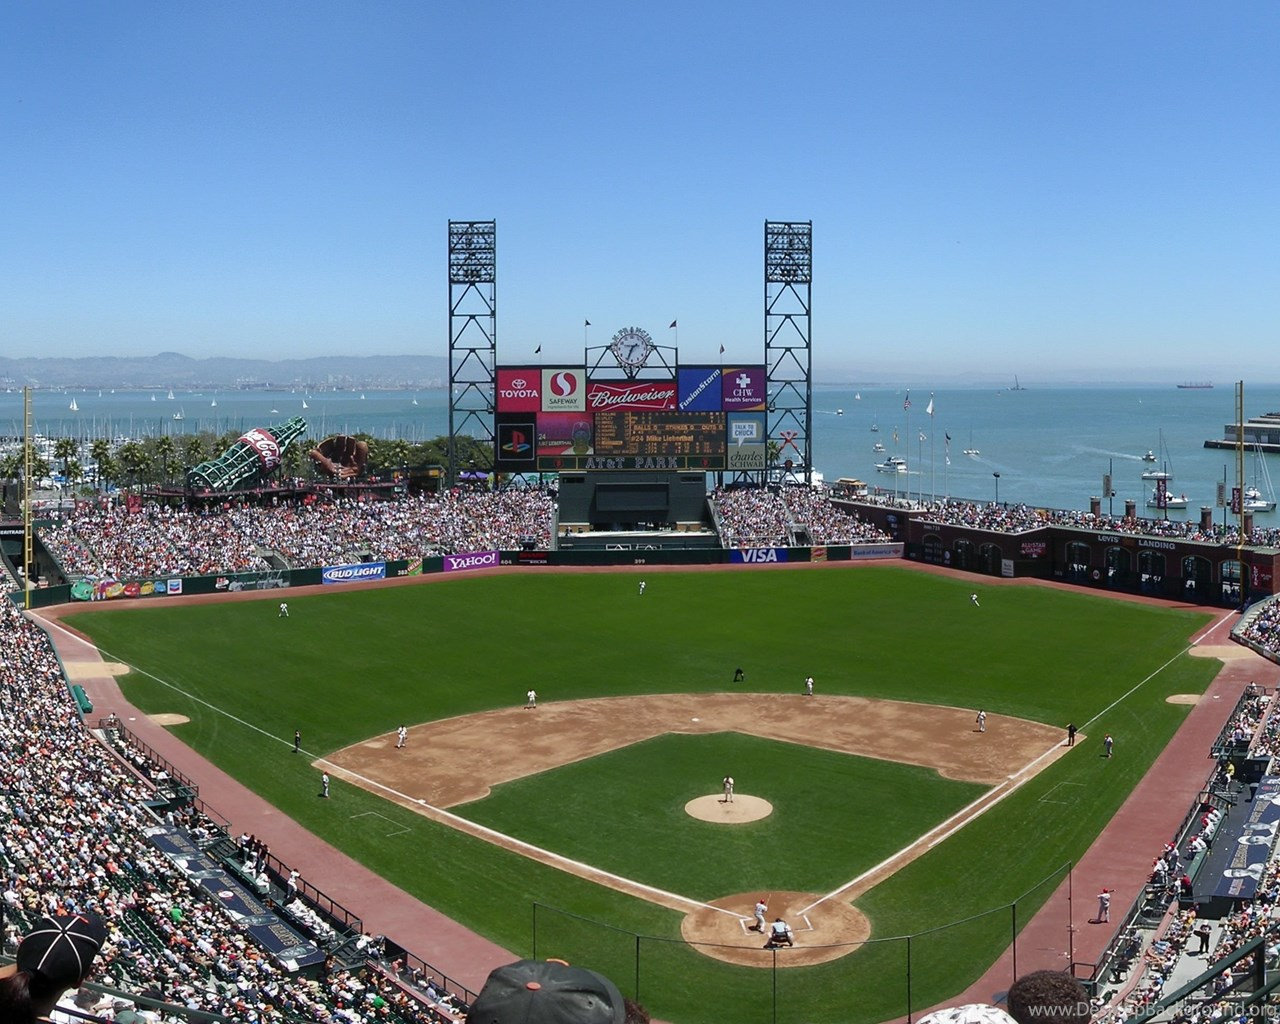 San Francisco Giants Stadium Wallpaper: SAN FRANCISCO GIANTS Mlb Baseball (7) Wallpapers Desktop